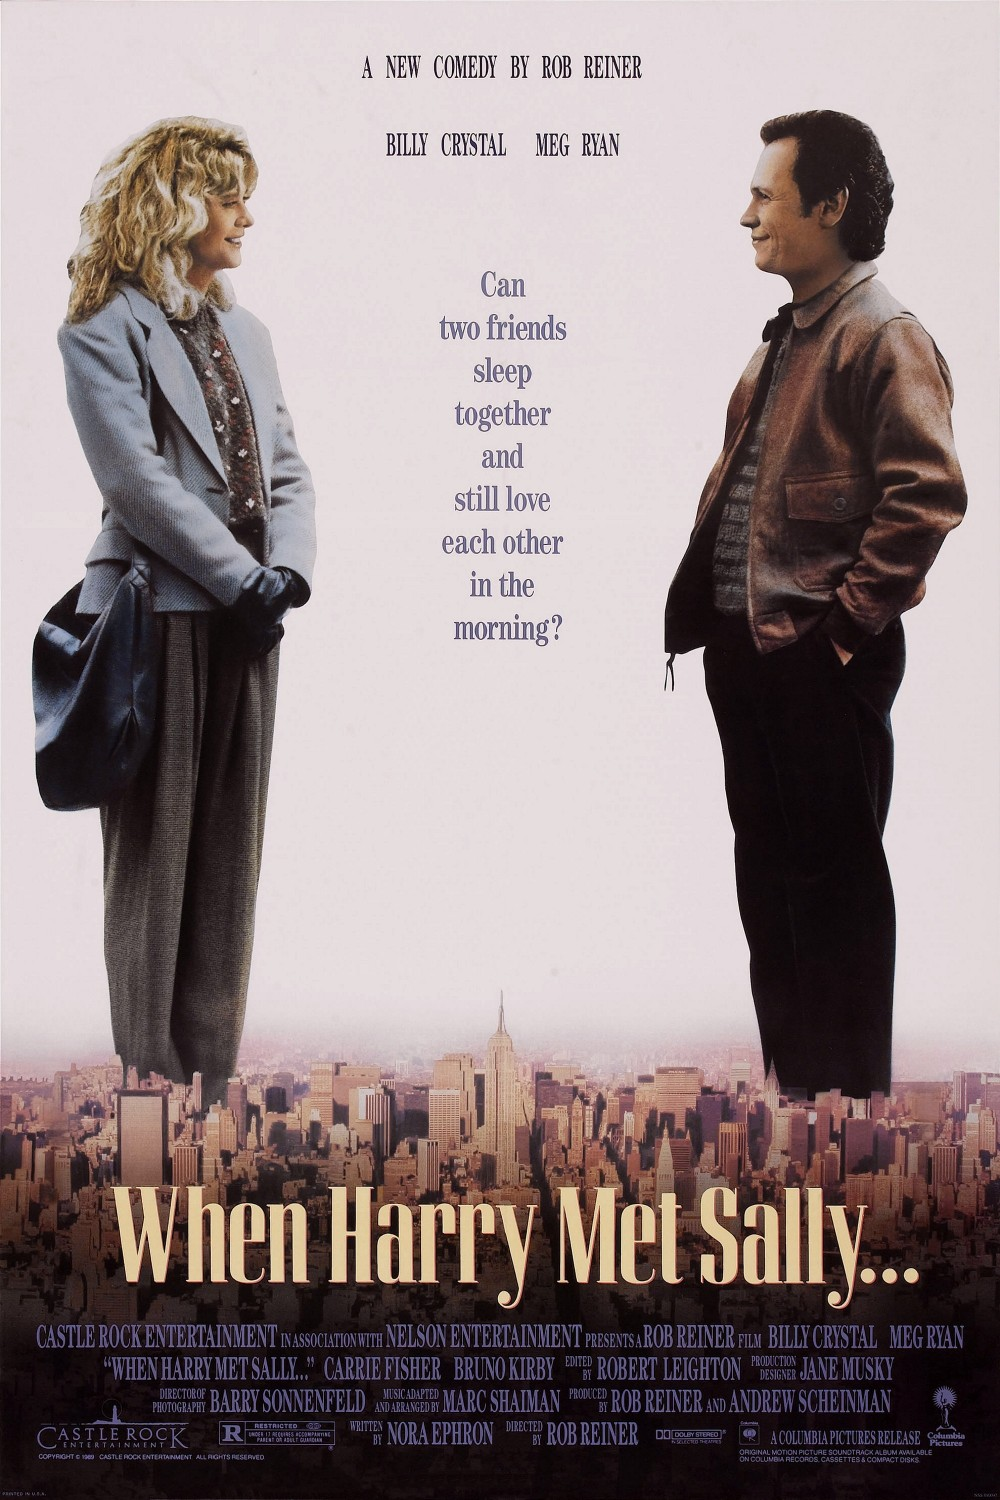 WHEN HARRY MET SALLY [One Week Engagement]